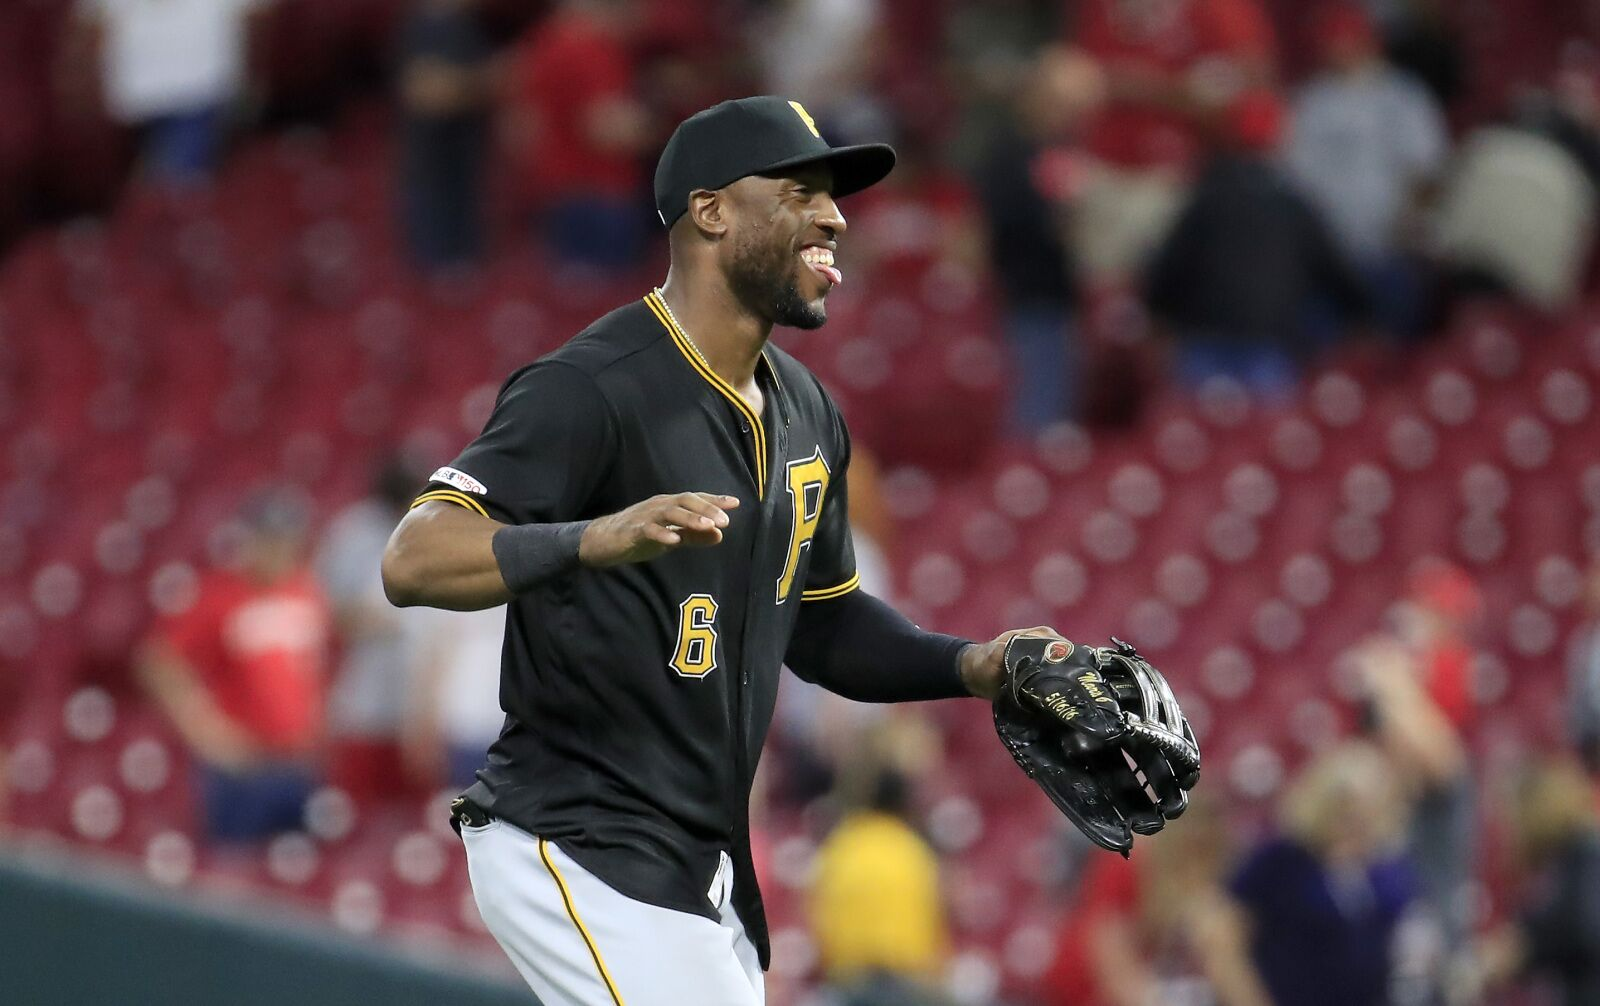 Report: Pittsburgh Pirates & New York Mets Resume Starling Marte Trade Talks